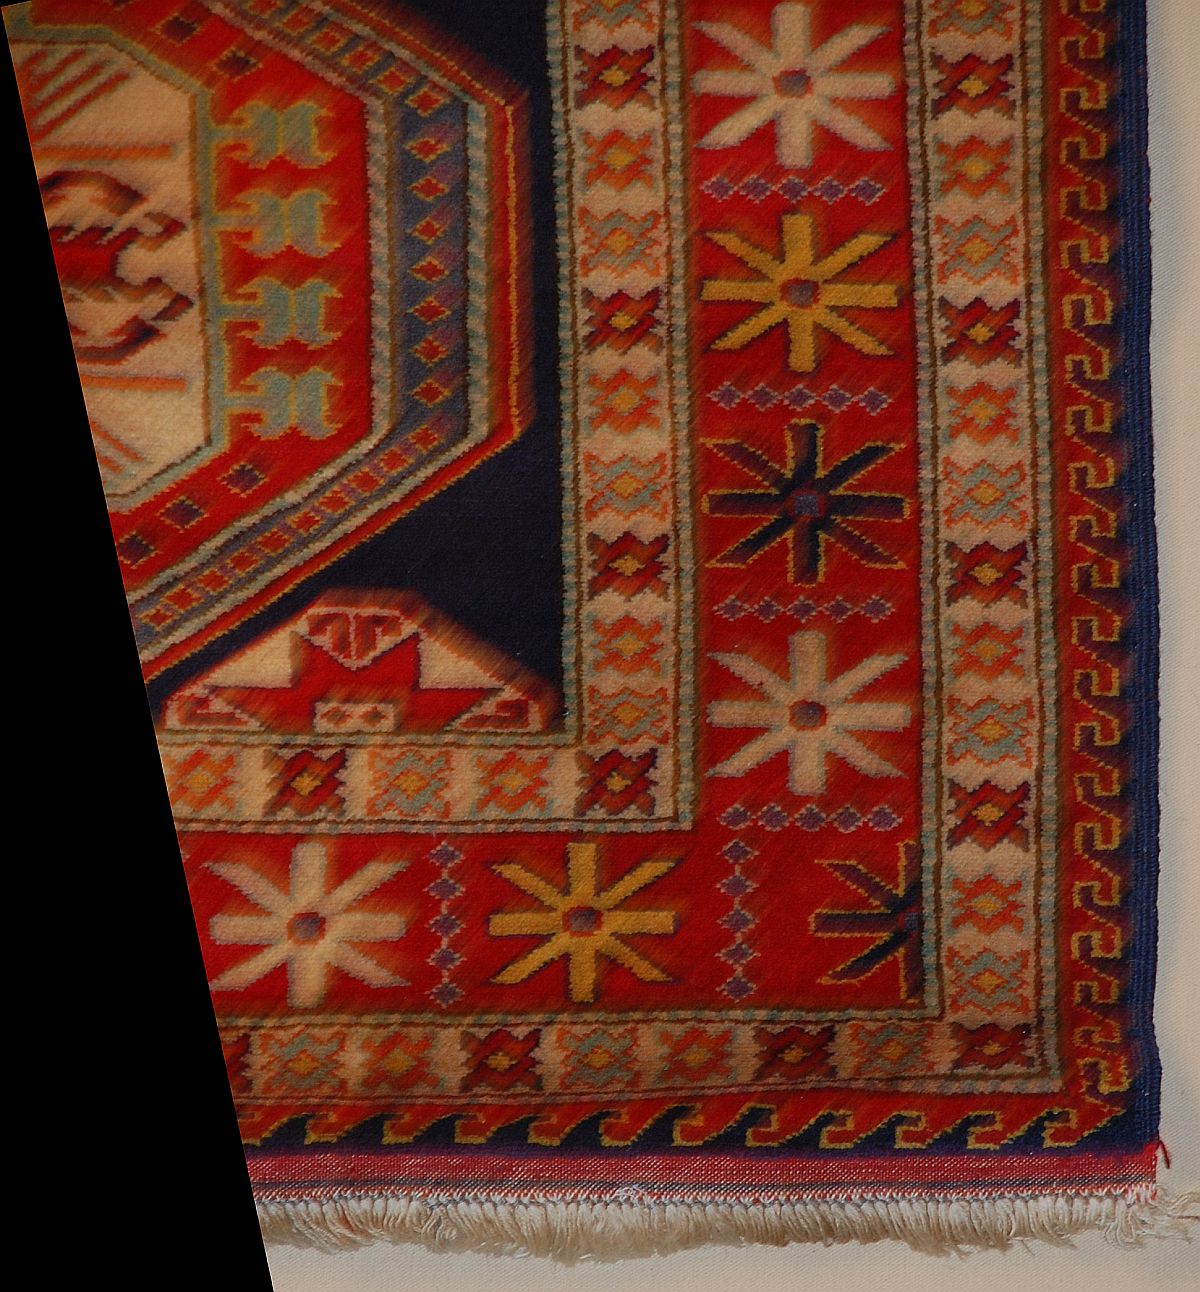 Afghan Rugs: Business As Usual? Part 2: The Rugs And